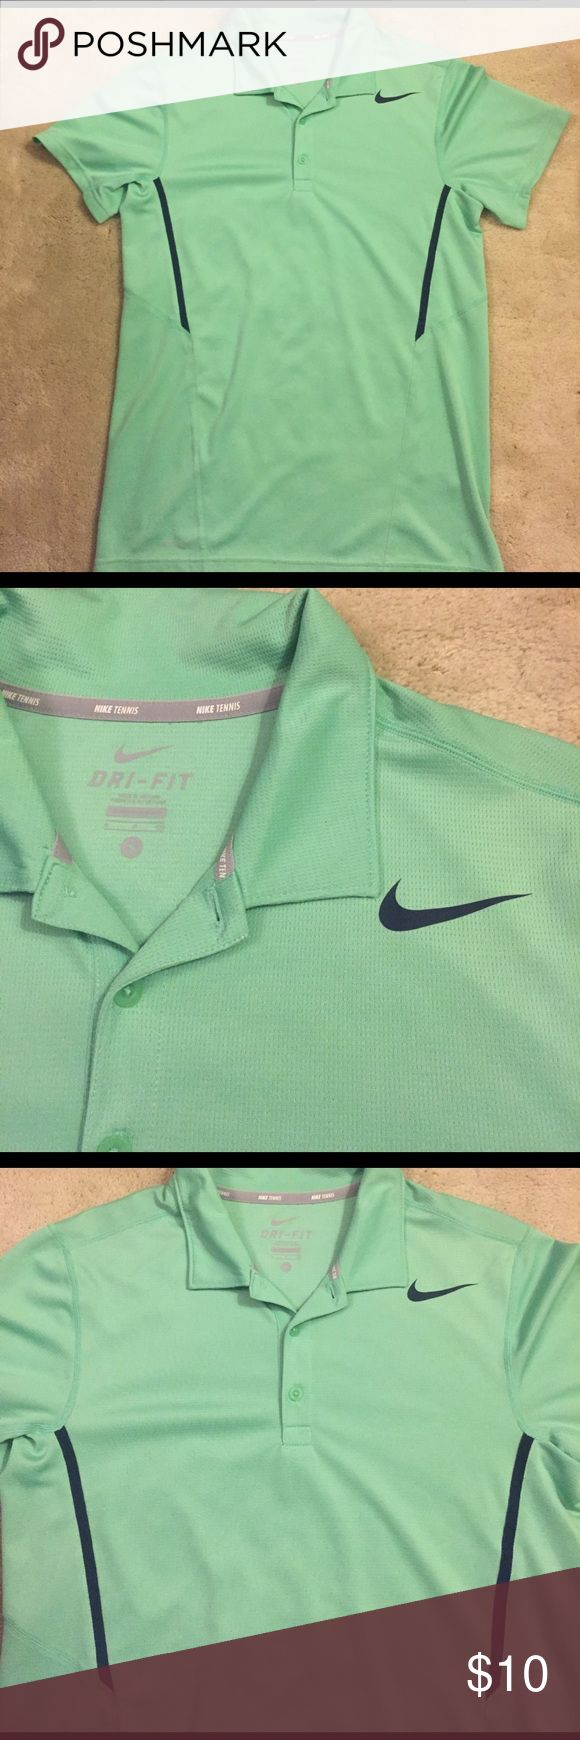 Nike Mint Green Short Sleeve Polo Nike Tennis polo. Mint green color with dark navy Nike swoosh and slimming side details. Size S. Nike Shirts Polos